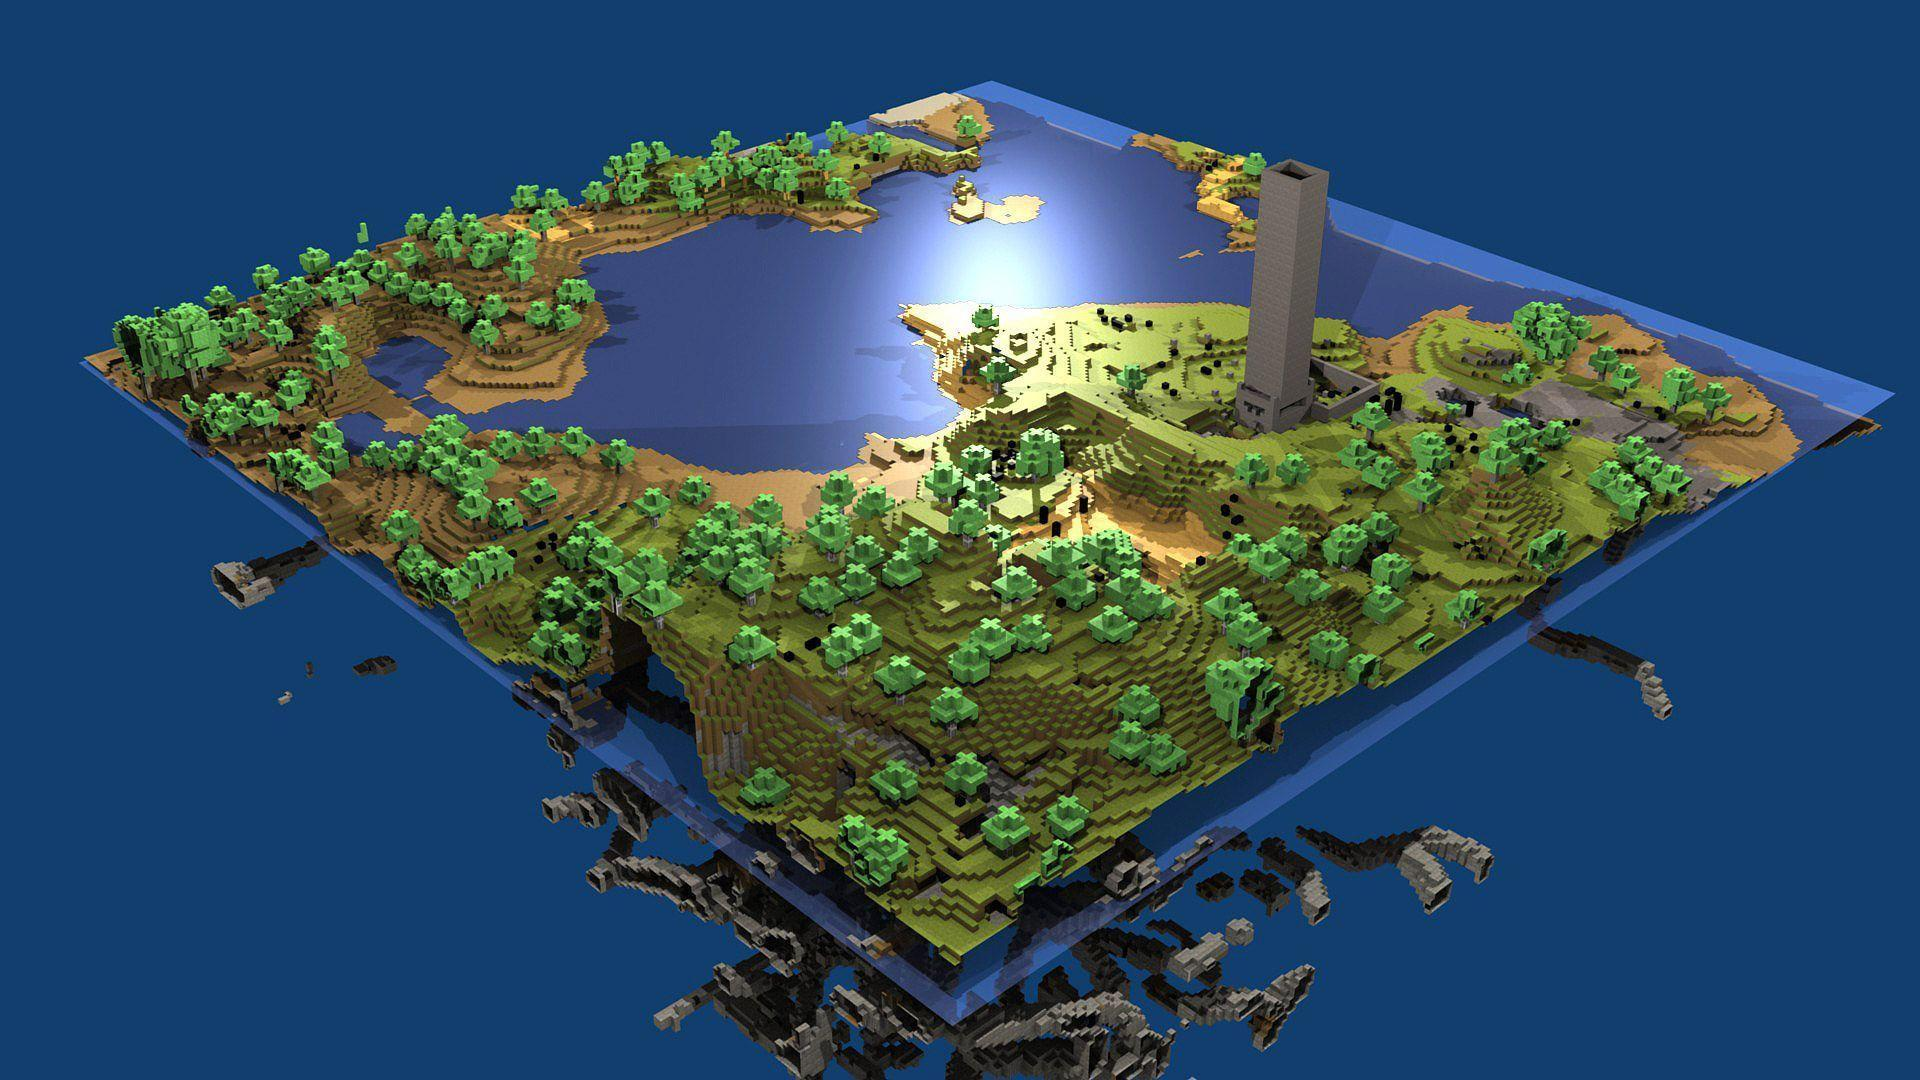 Must see Wallpaper Minecraft Desktop - 4cdtttO  Graphic_279589.jpg